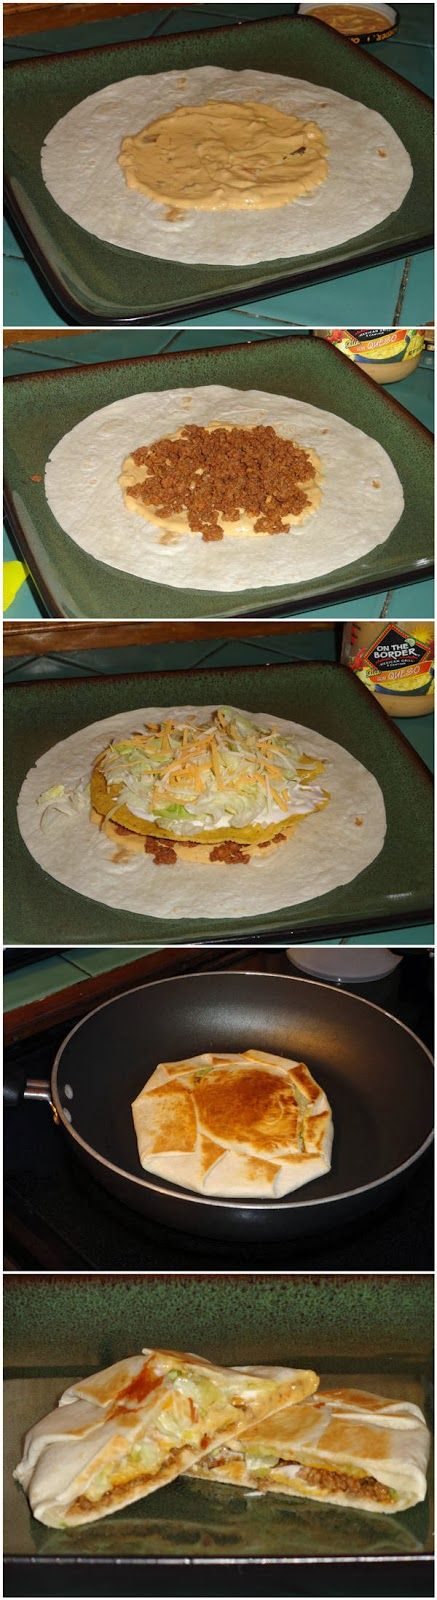 Yummy Crunchwrap Supremes: Wraps Supreme, Sour Cream, Crunchwrap Supreme, Yummy Crunchwrap, Crunches Wraps, Tacos Belle, Easy Recipes, Ground Turkey, Homemade Crunchwrap